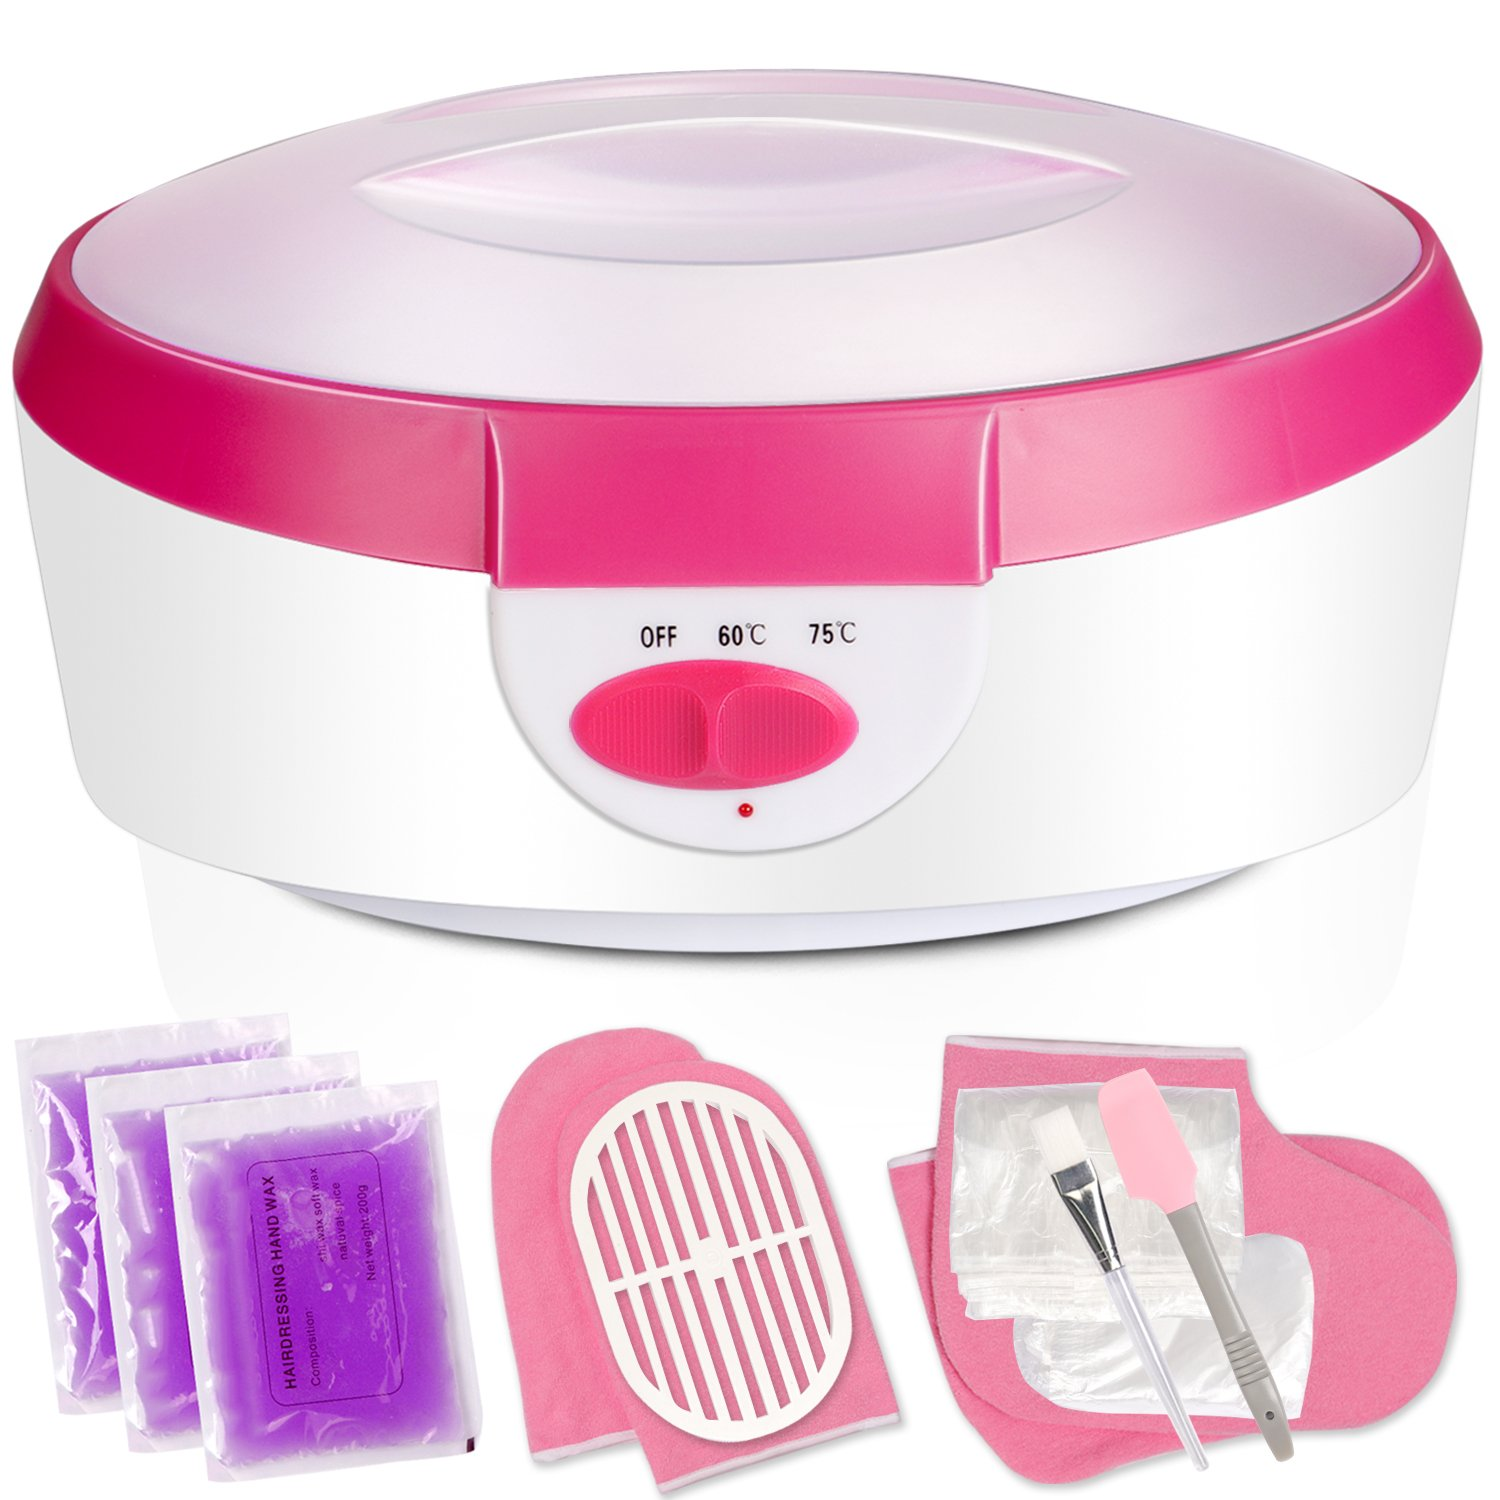 Ejiubas Paraffin Wax Warmer Quick-Heating Paraffin Wax Machine Moisturizing Kit with Paraffin Wax Refill Thermal Mitts Gloves Silicone Brush Paraffin Bath Spa for Hands and Feet